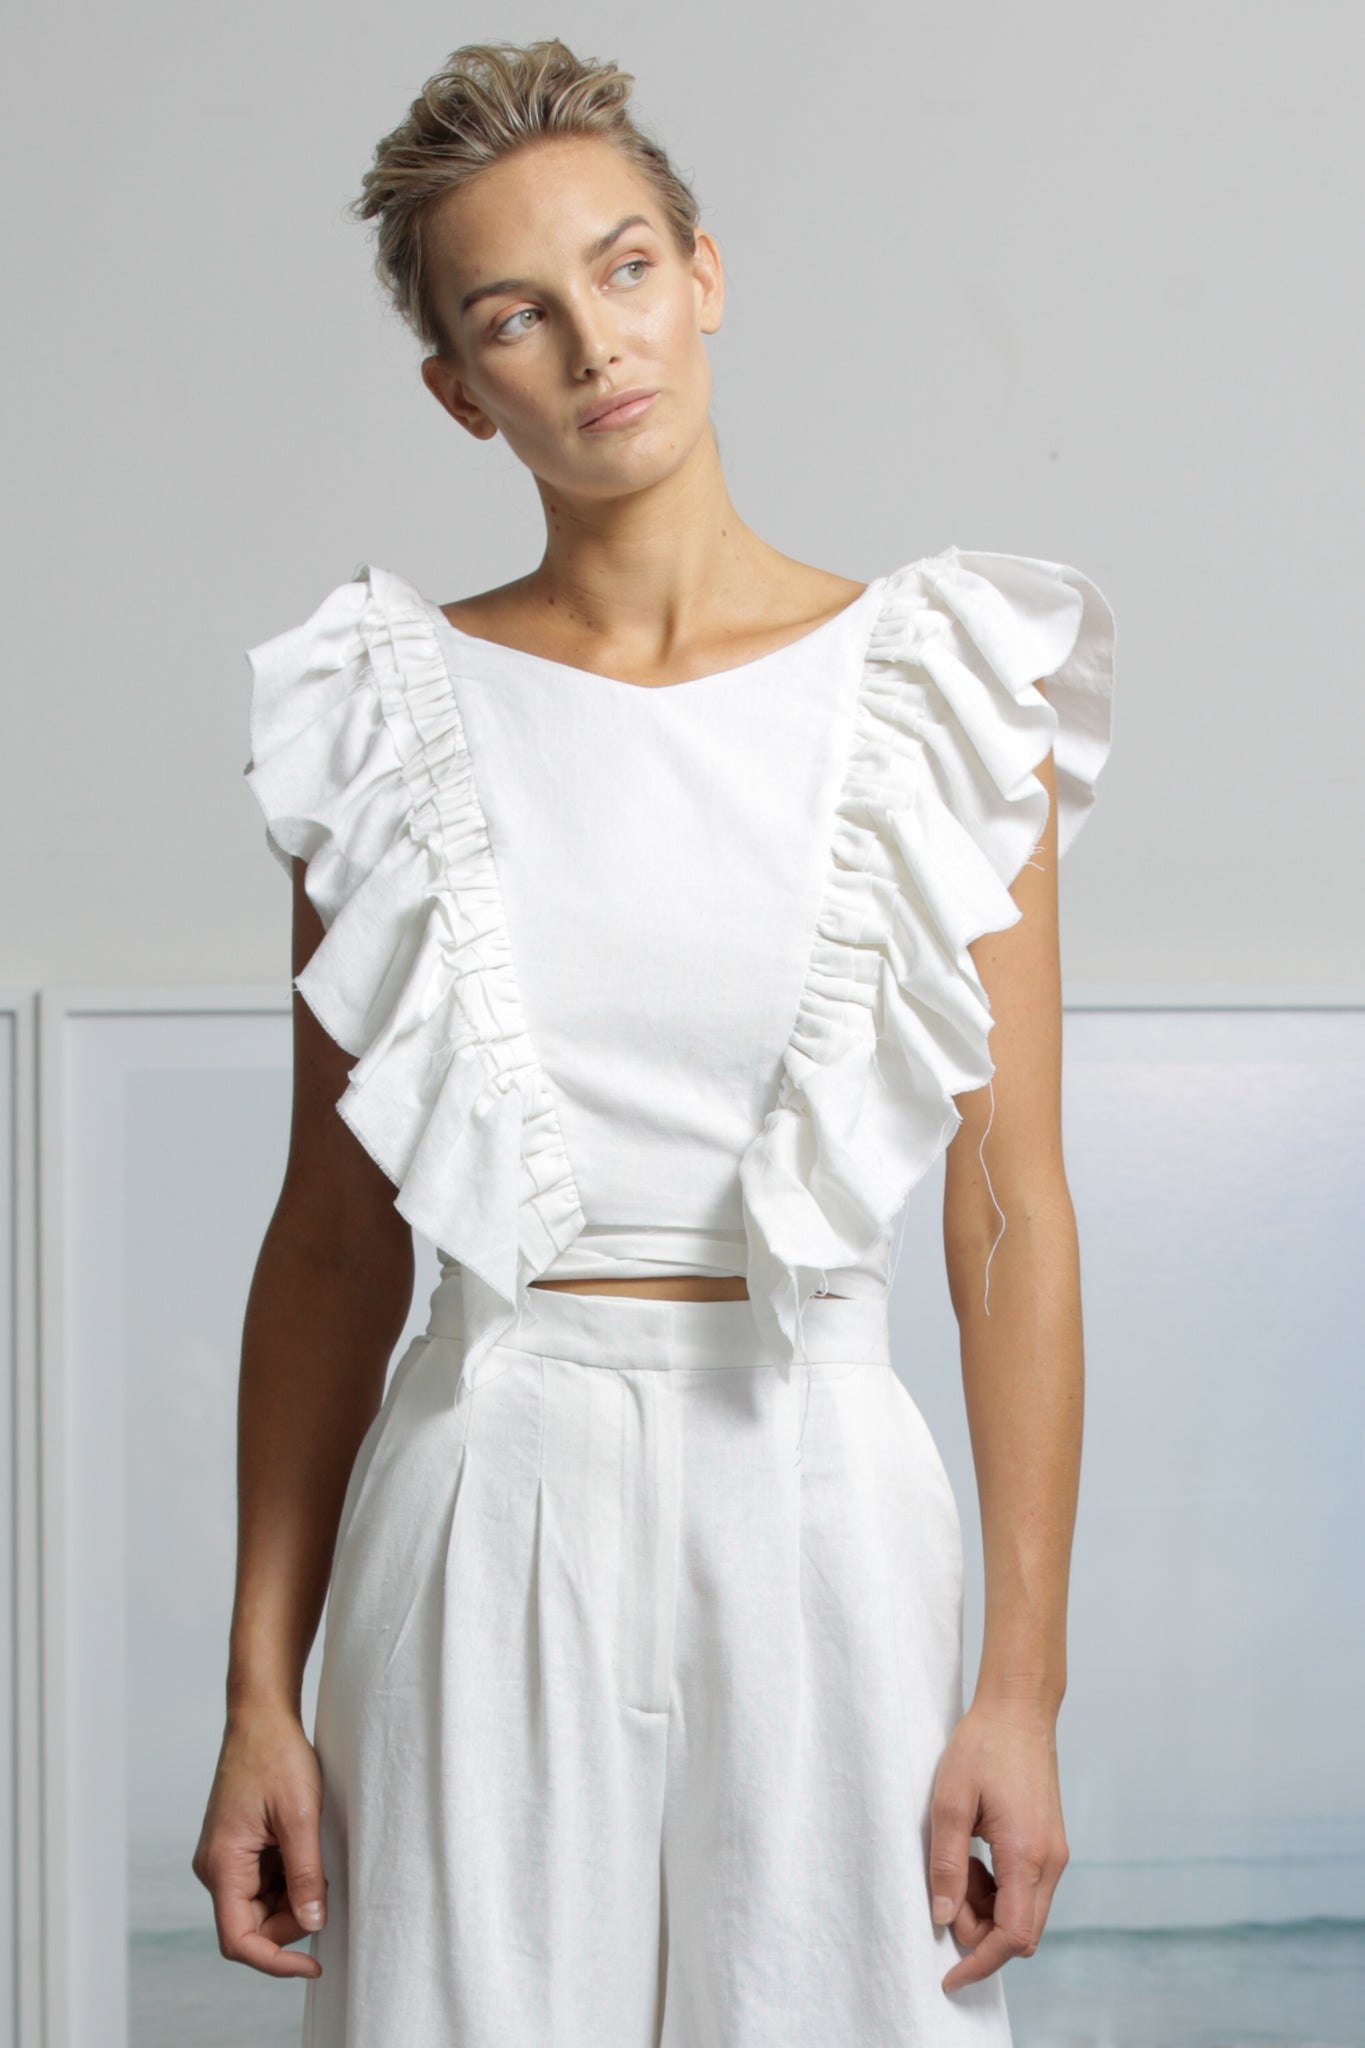 FARFALLA TOP - WHITE